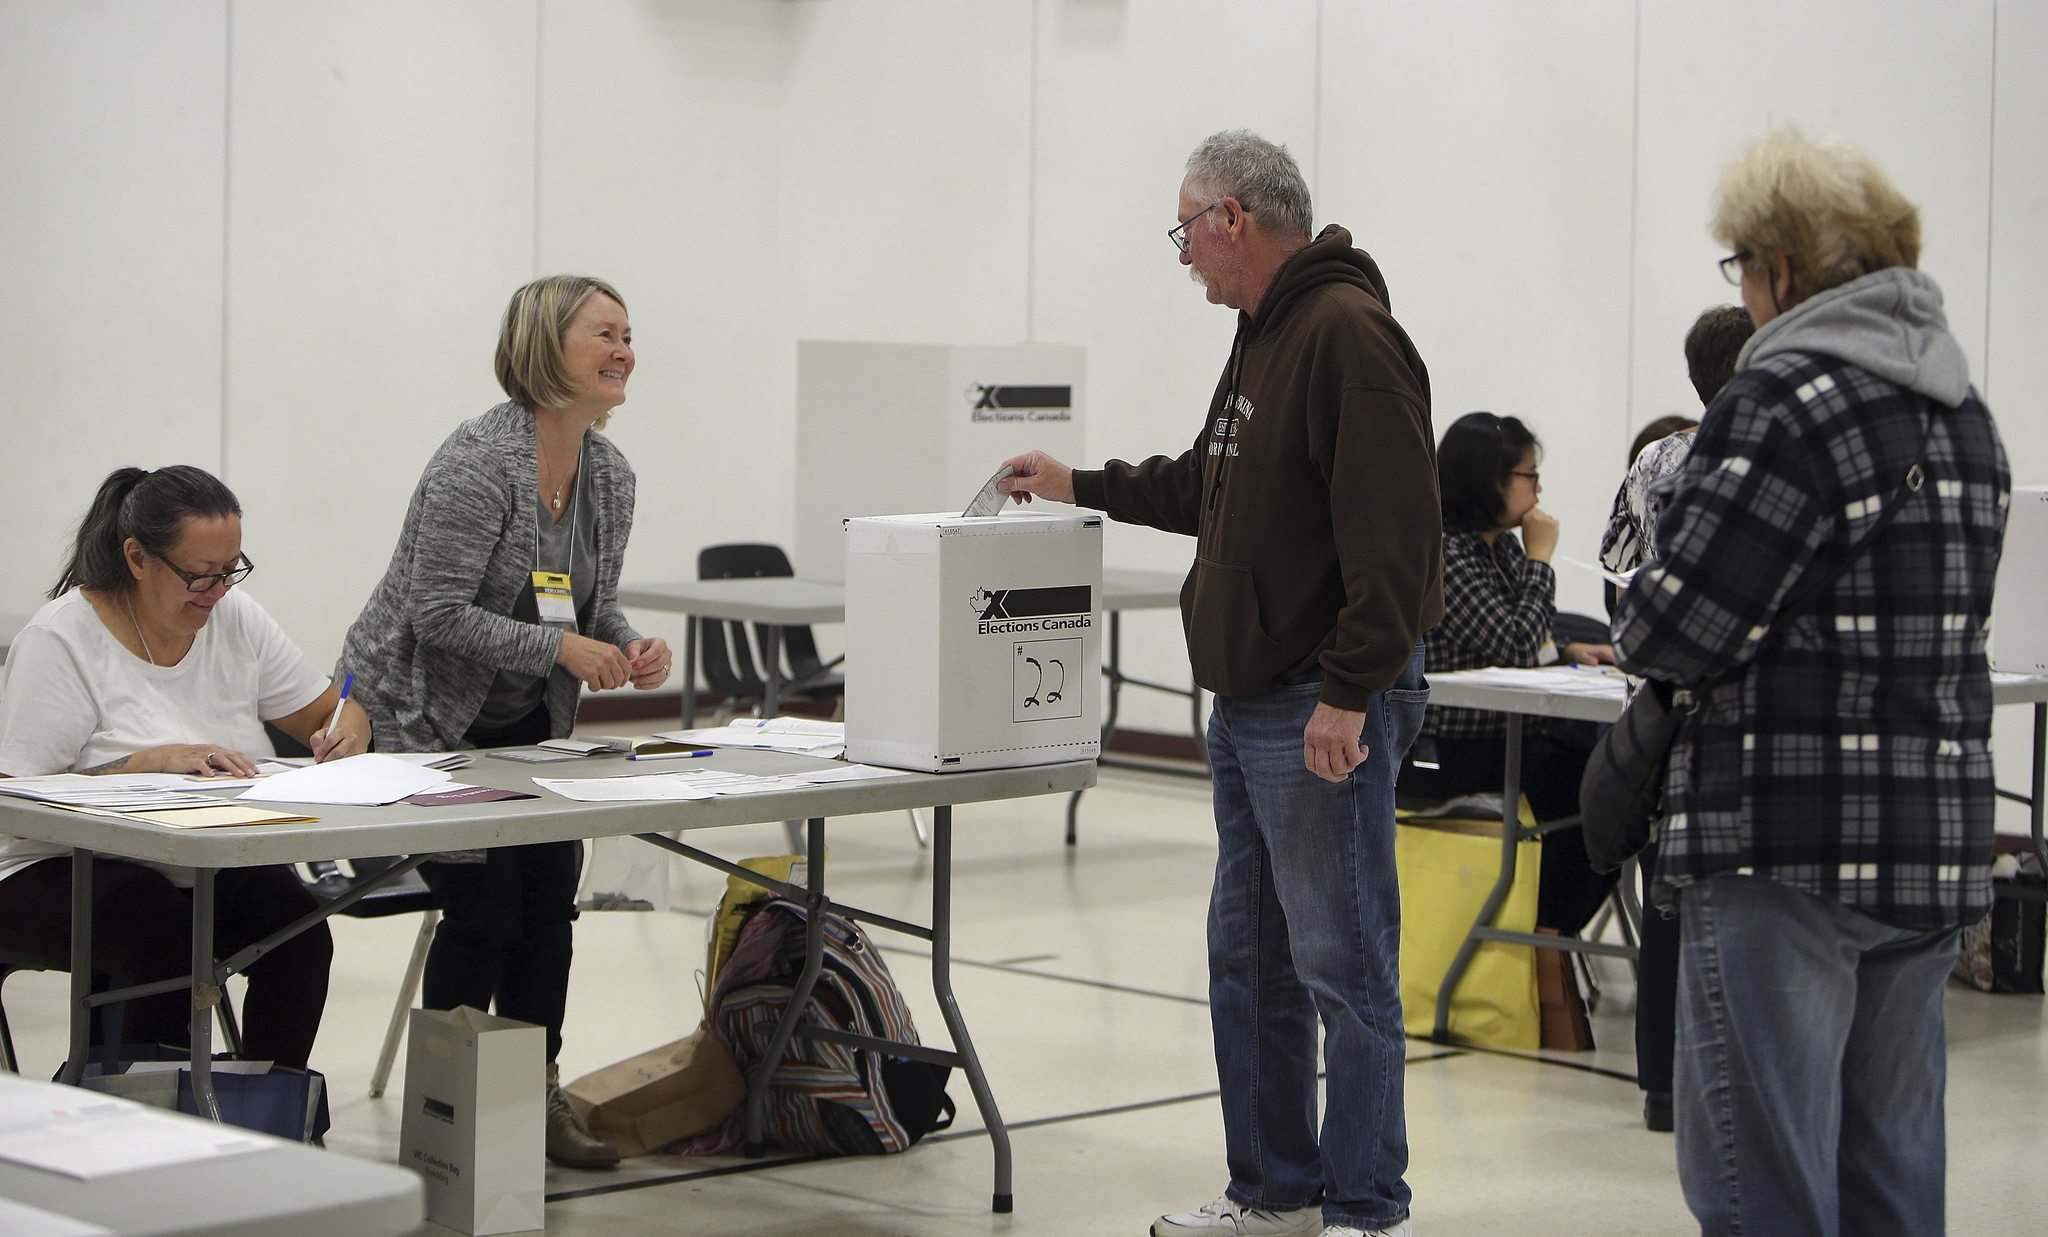 Rick Lentowich casts his ballot in the Winnipeg Centre riding at the Valour Community Centre Clifton site Monday when polls opened at 8:30 a.m. (Jason Halstead / Winnipeg Free Press)</p>